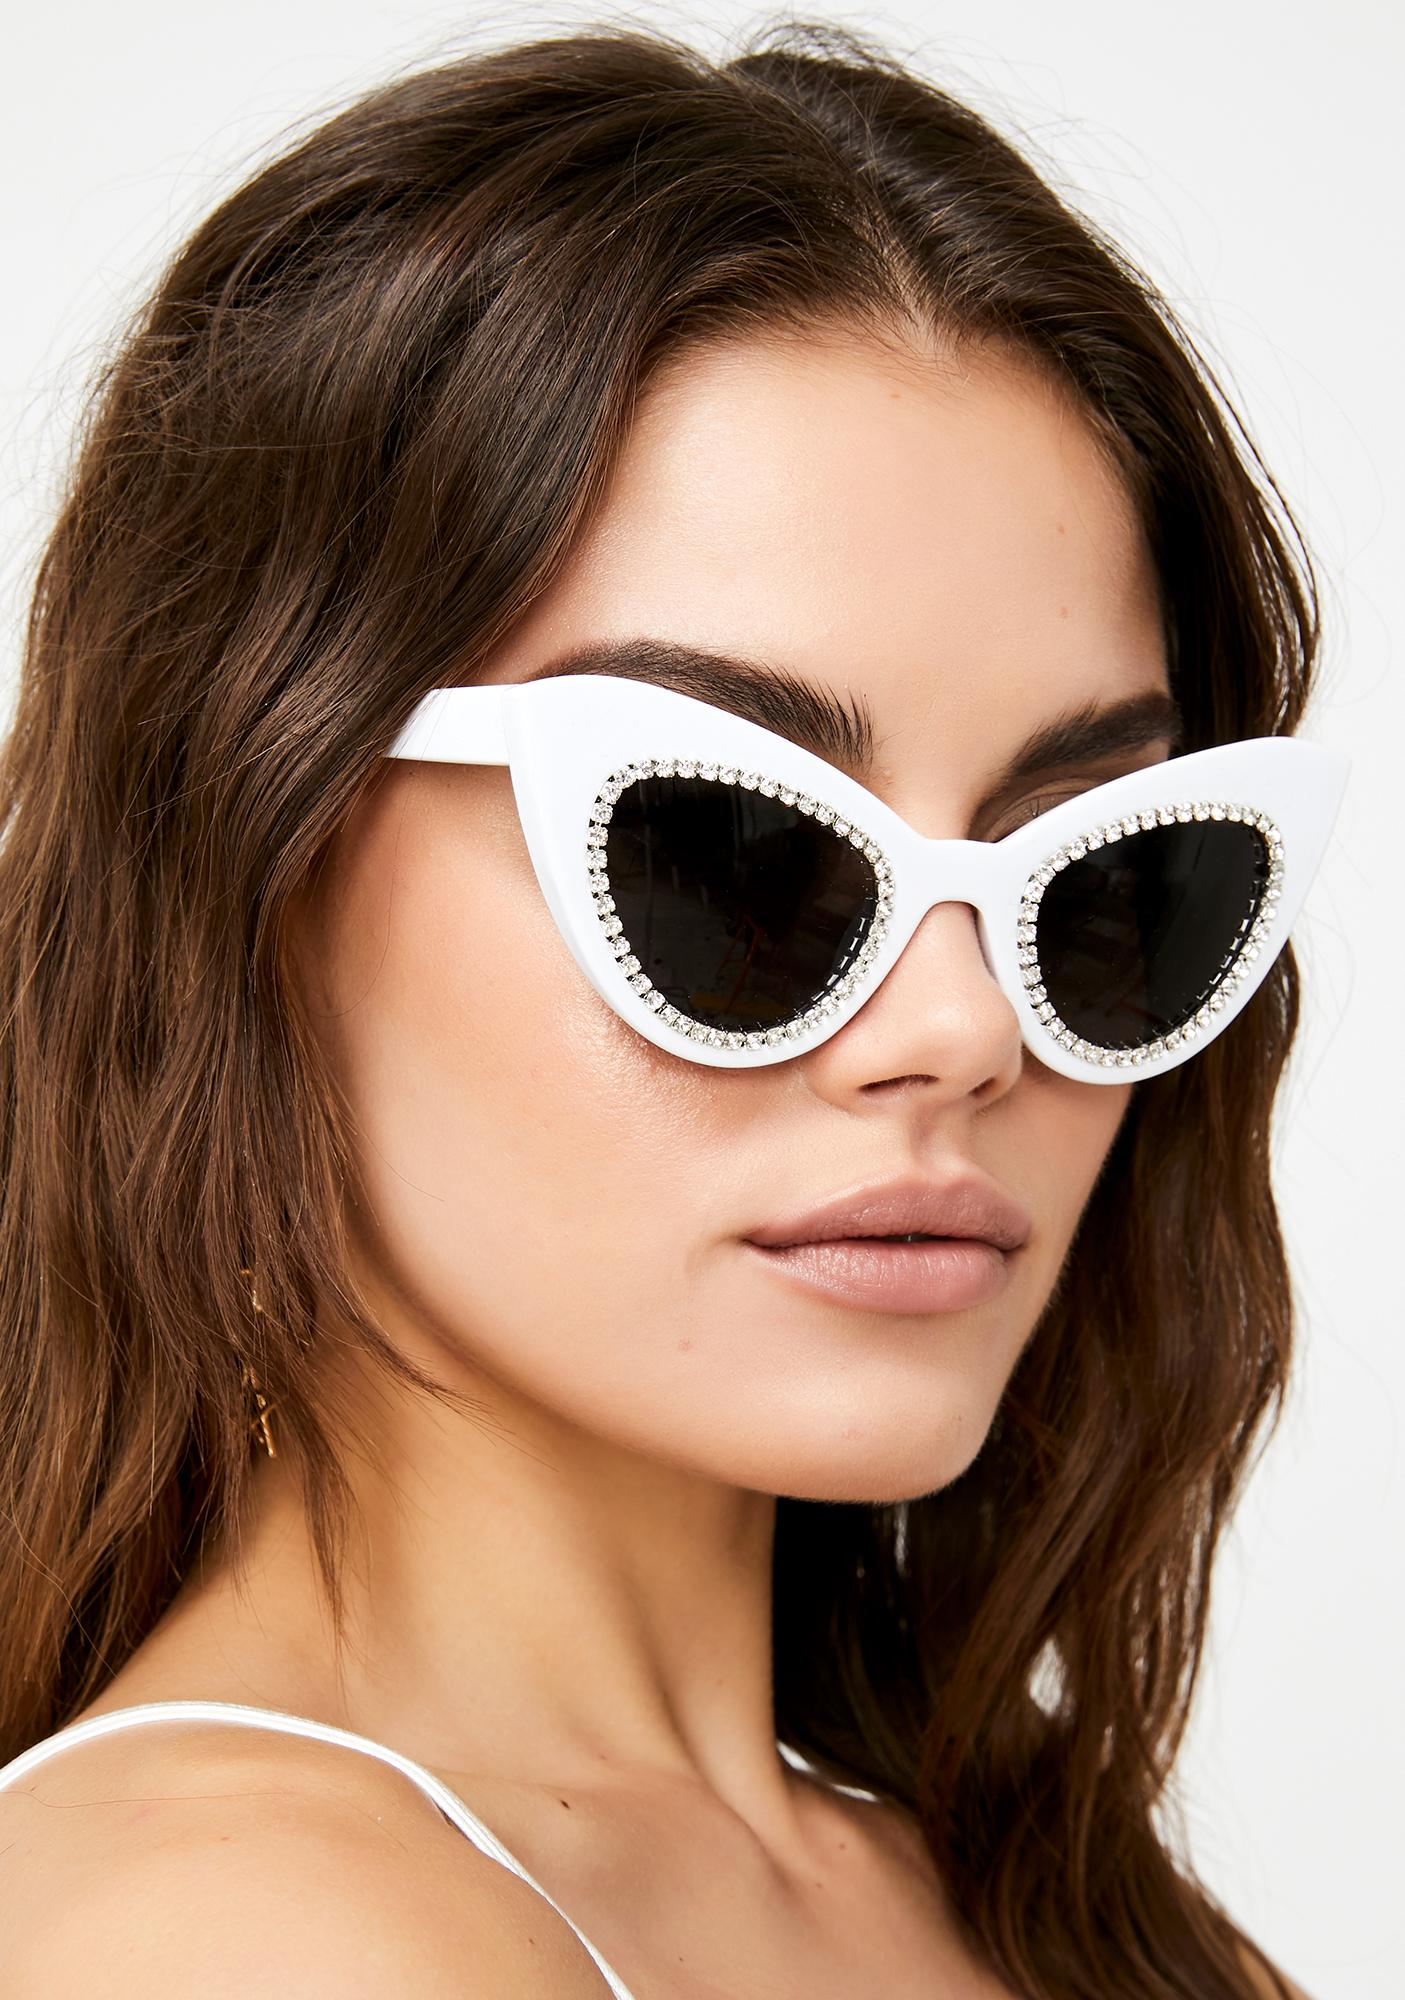 Blindin' Glam Rhinestone Sunglasses